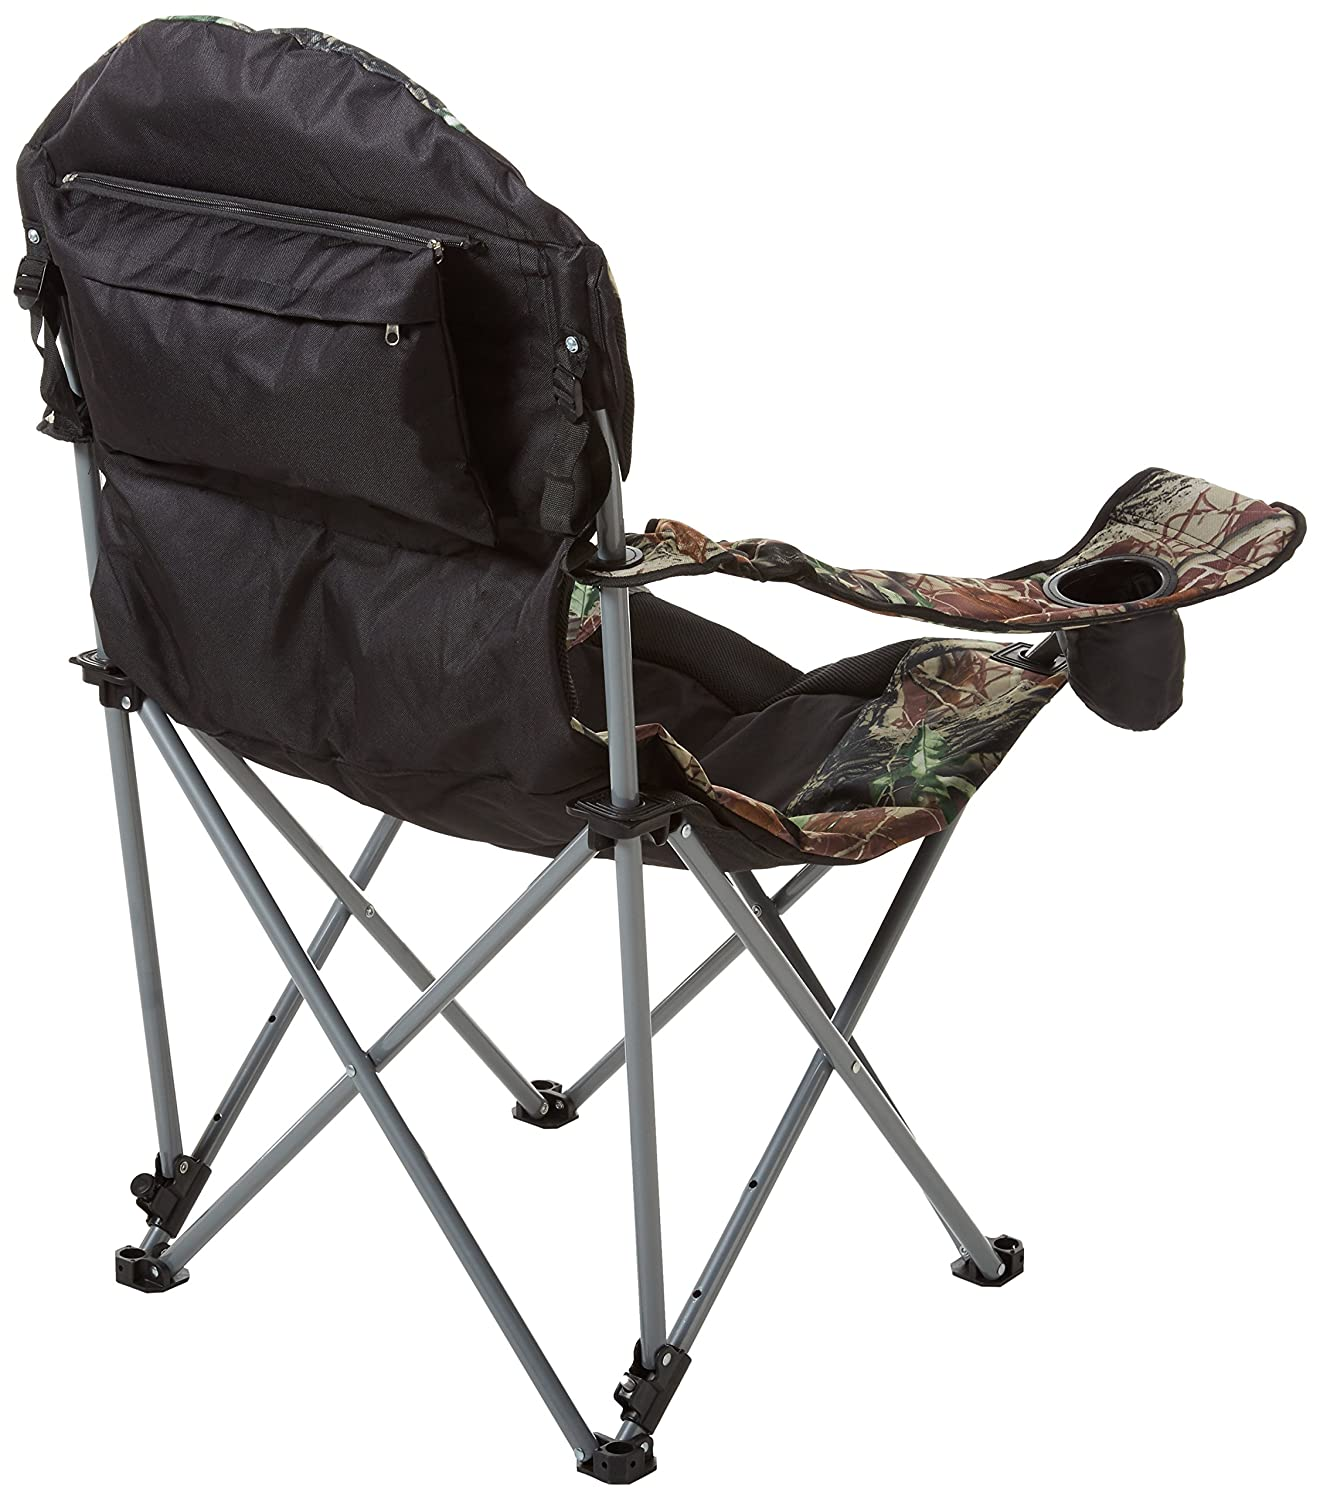 Stylish Camping Foldable Reclining Camp Chair Black//Hunt Camo